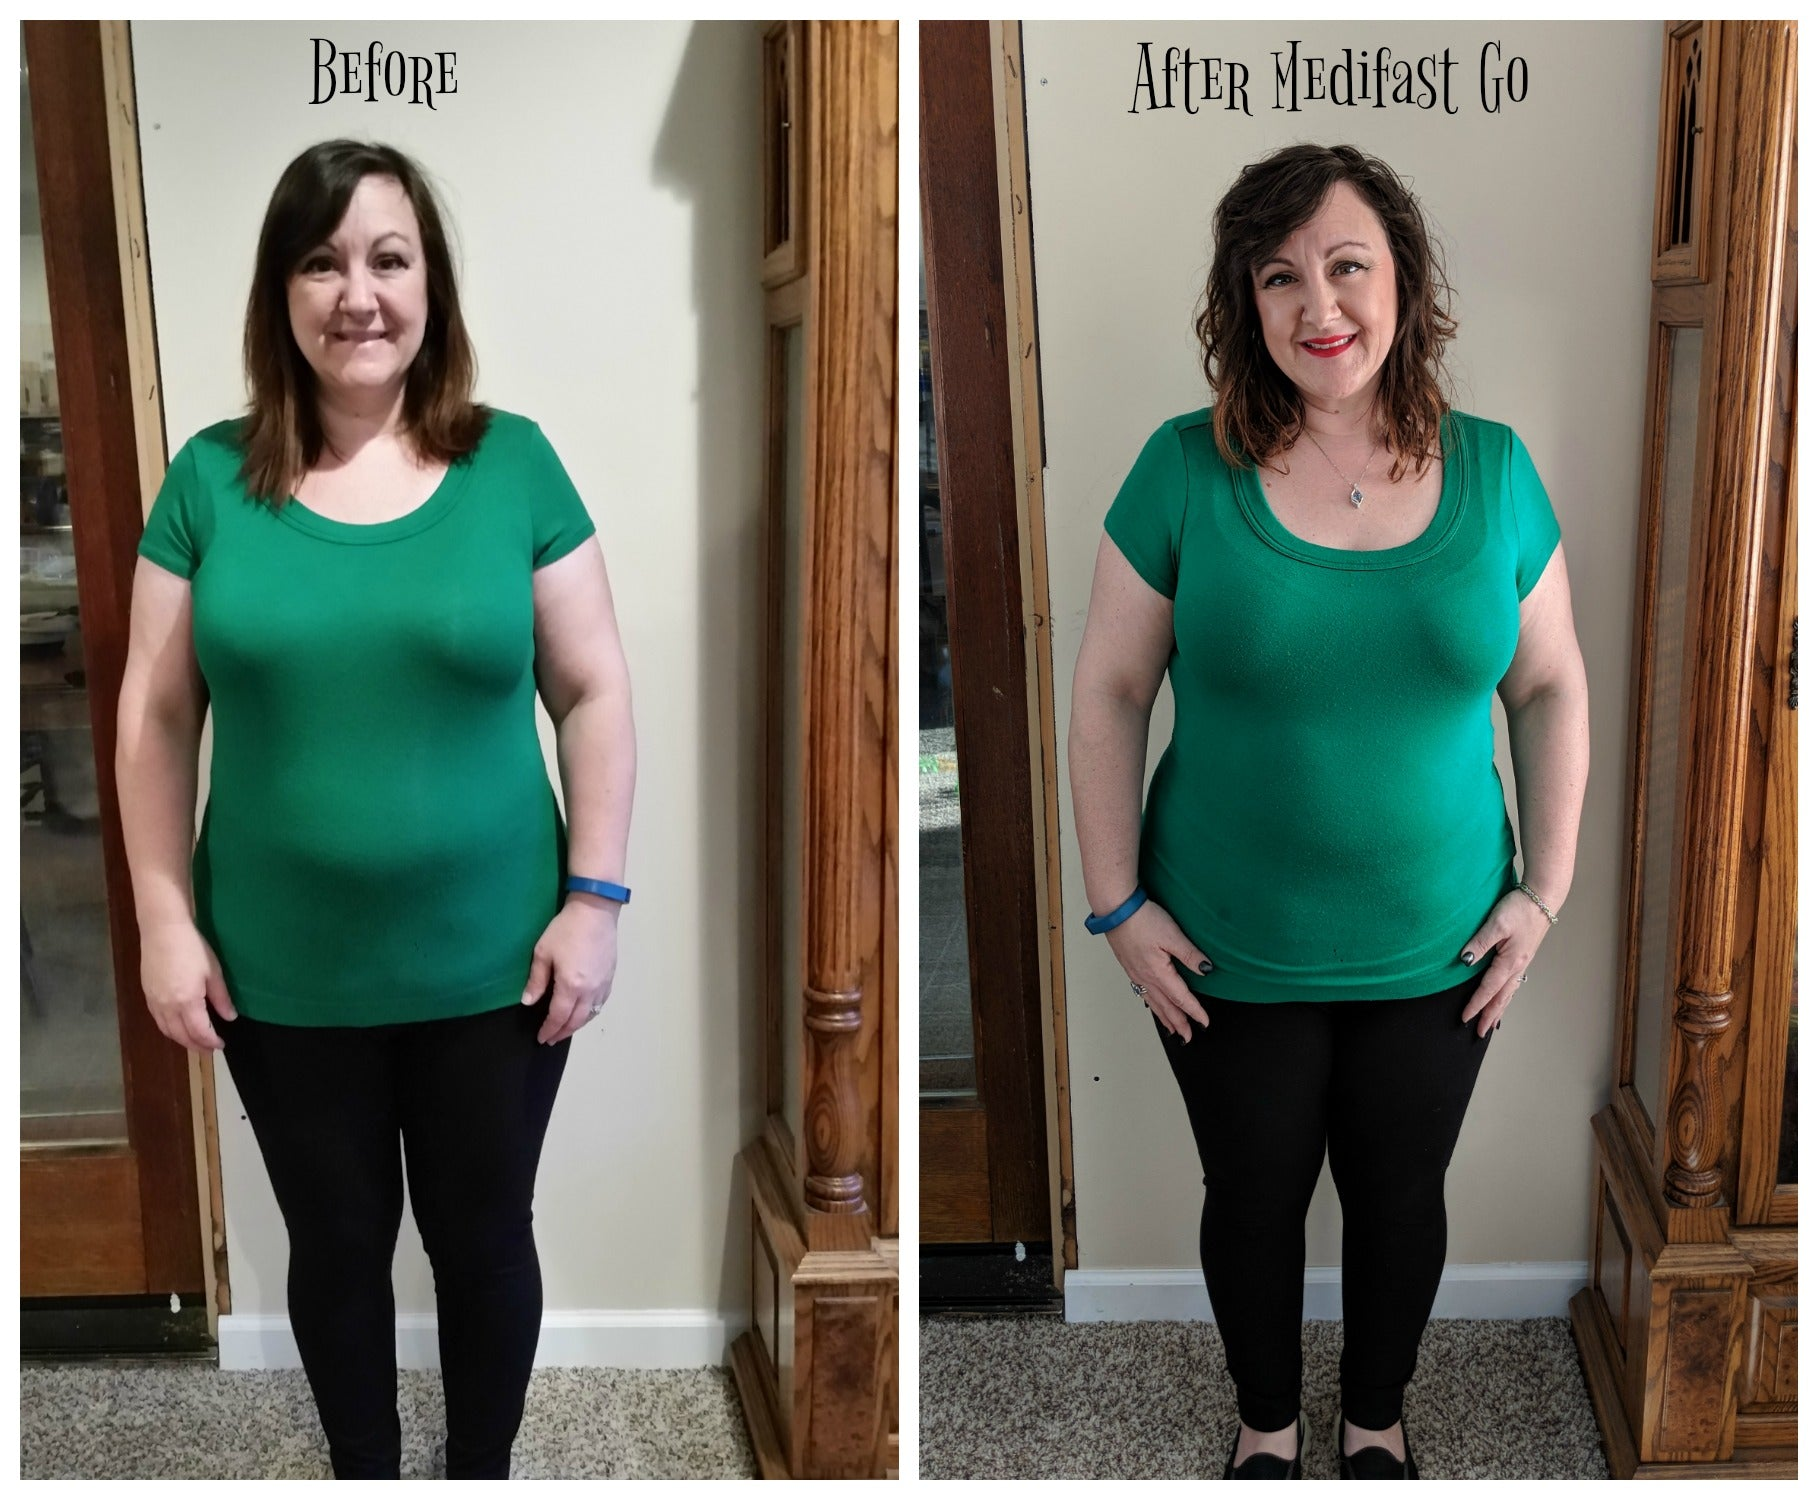 Before and After pics on the Medifast Go program via @agirlsgottaspa. Happy with the inches lost so far! #sponsored #medifast #weightlossjourney #diet